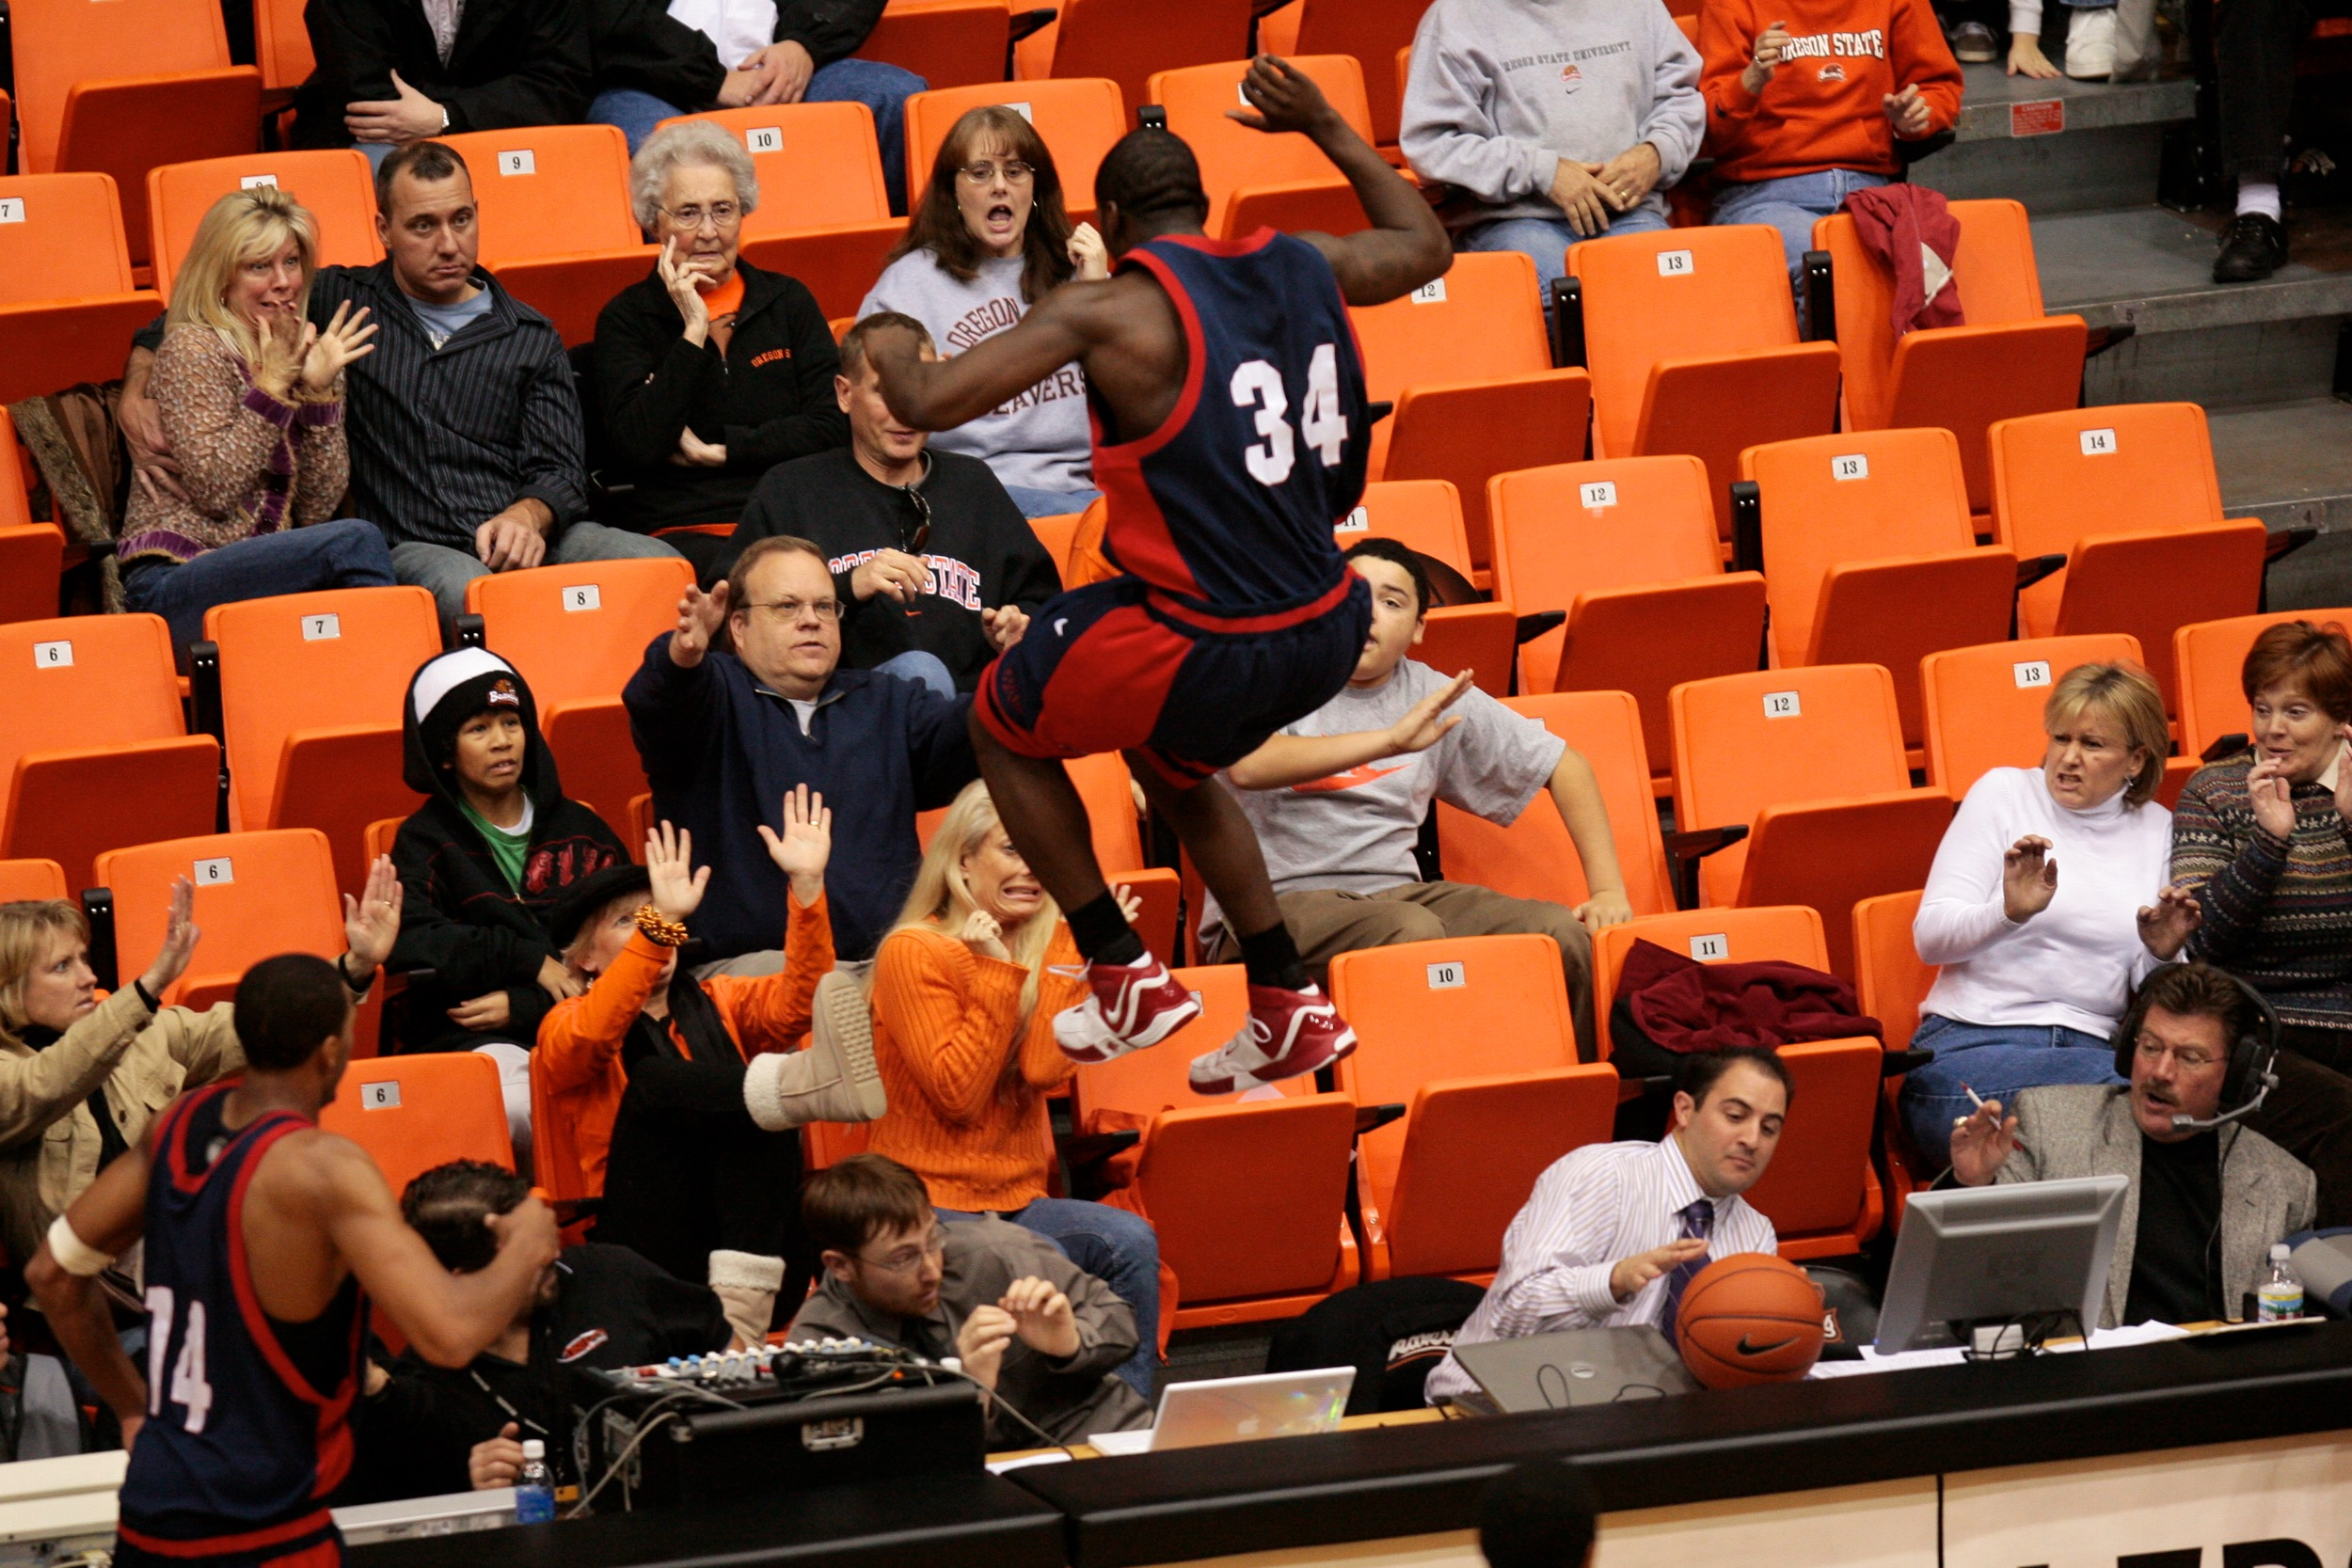 A player from Fresno State leaps into the stands while chasing after a loose ball.© Sol Neelman/The Oregonian